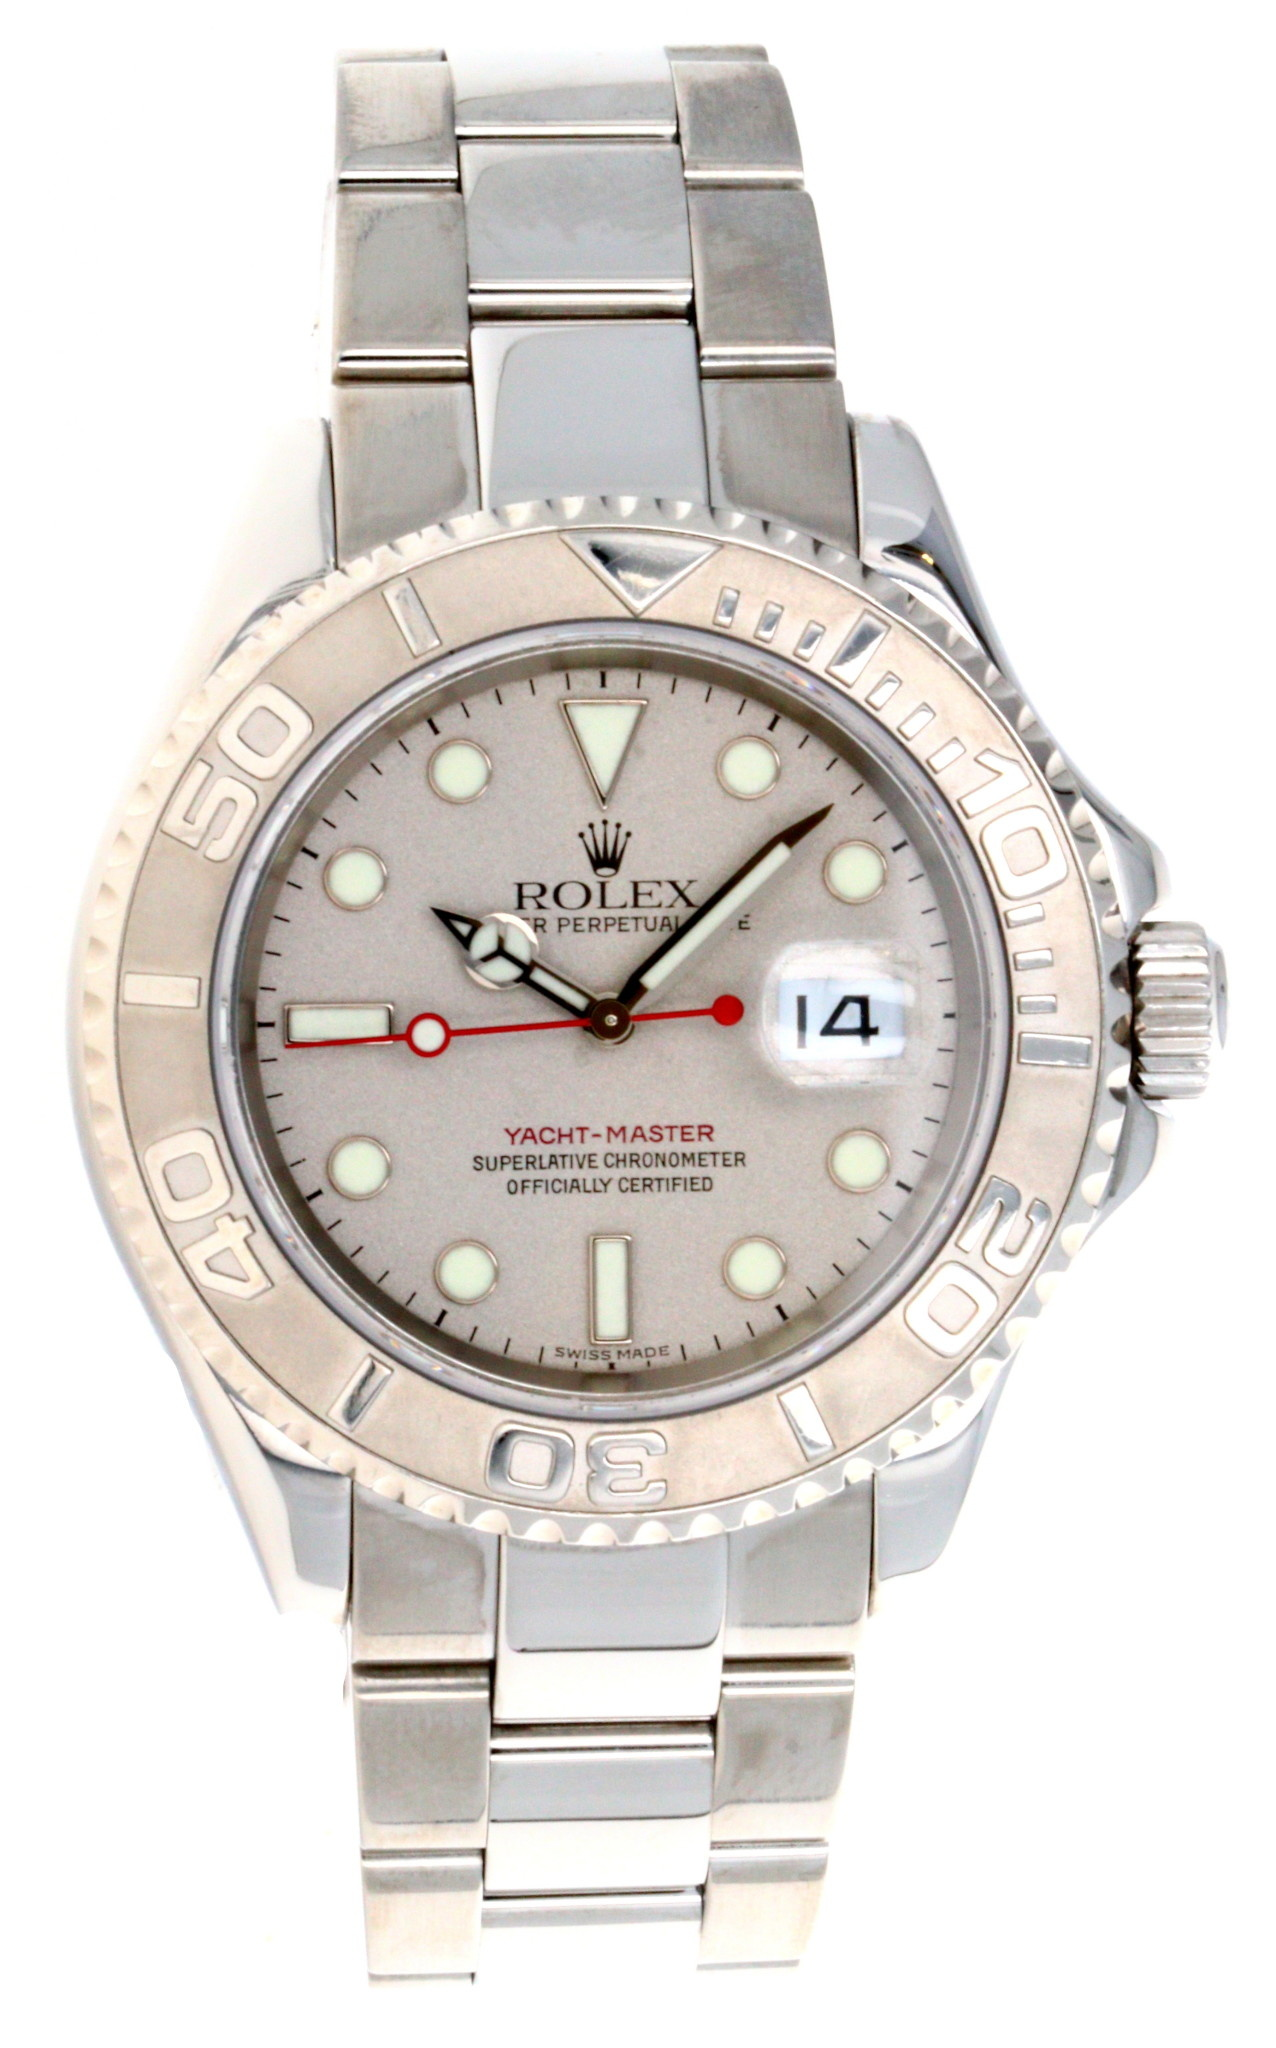 ROLEX YACHTMASTER I (2007 B+SP)